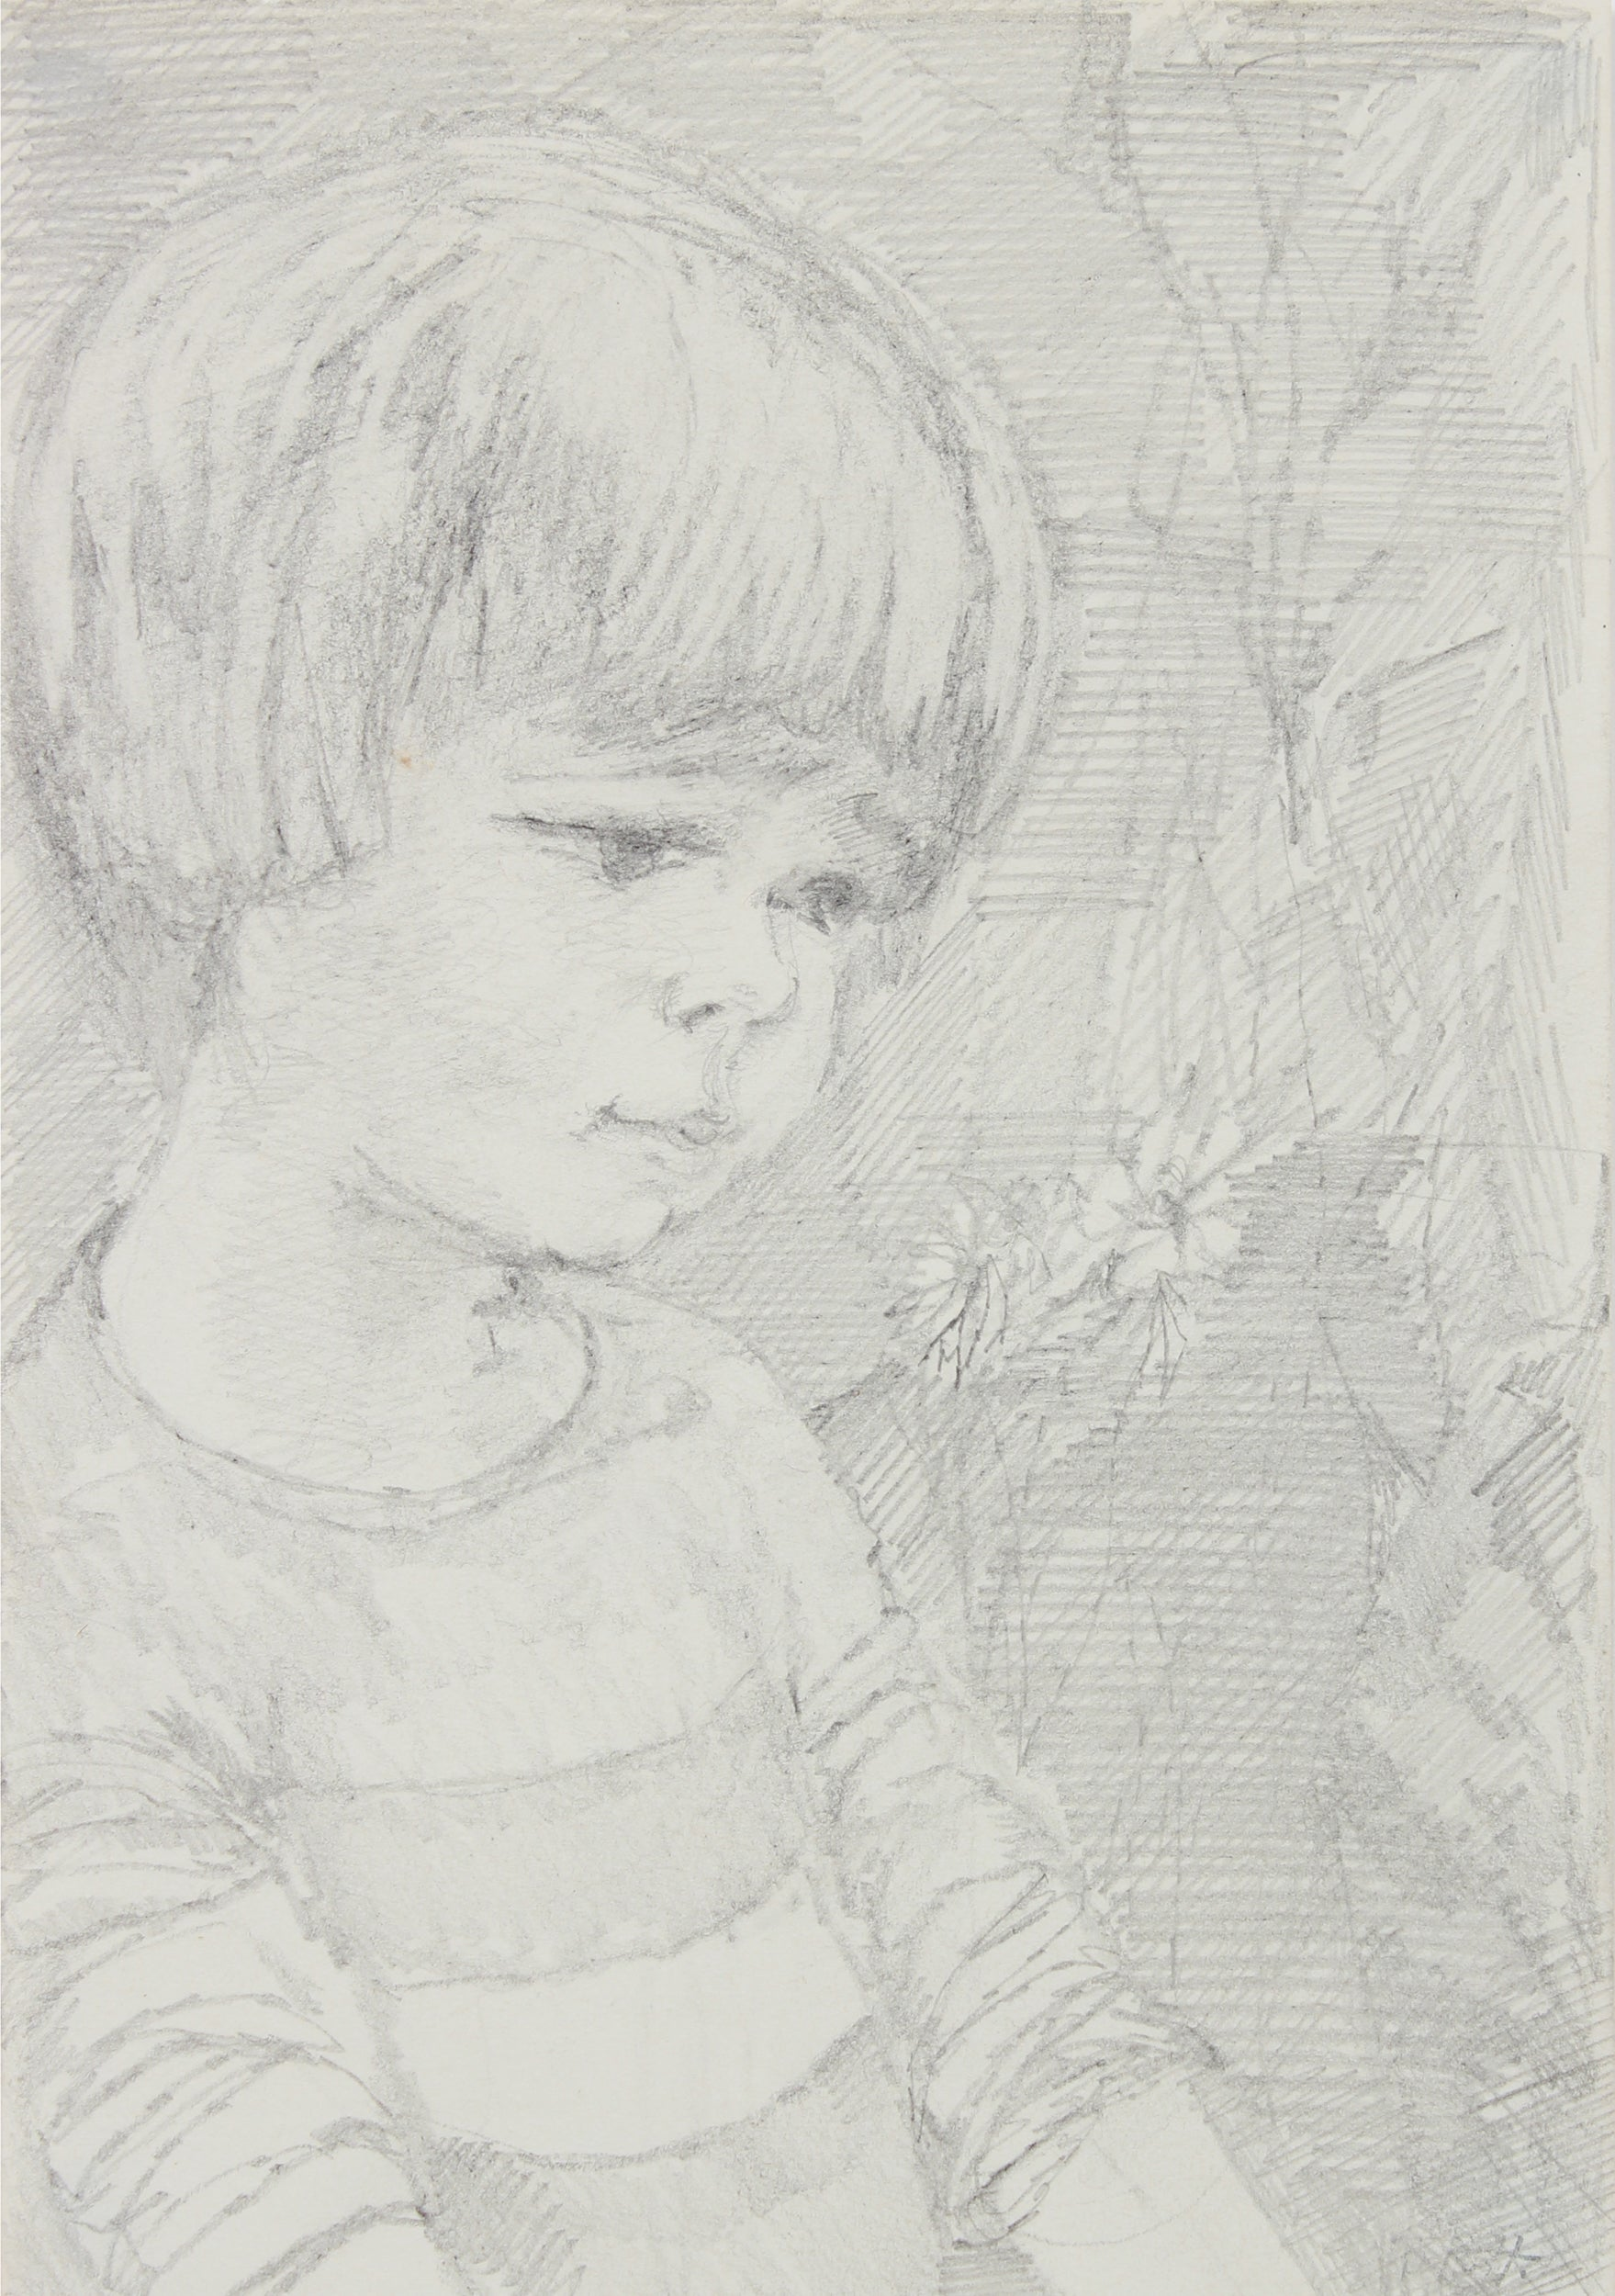 Monochrome Drawing of a Boy <br>1940-60s Graphite <br><br>#B0909